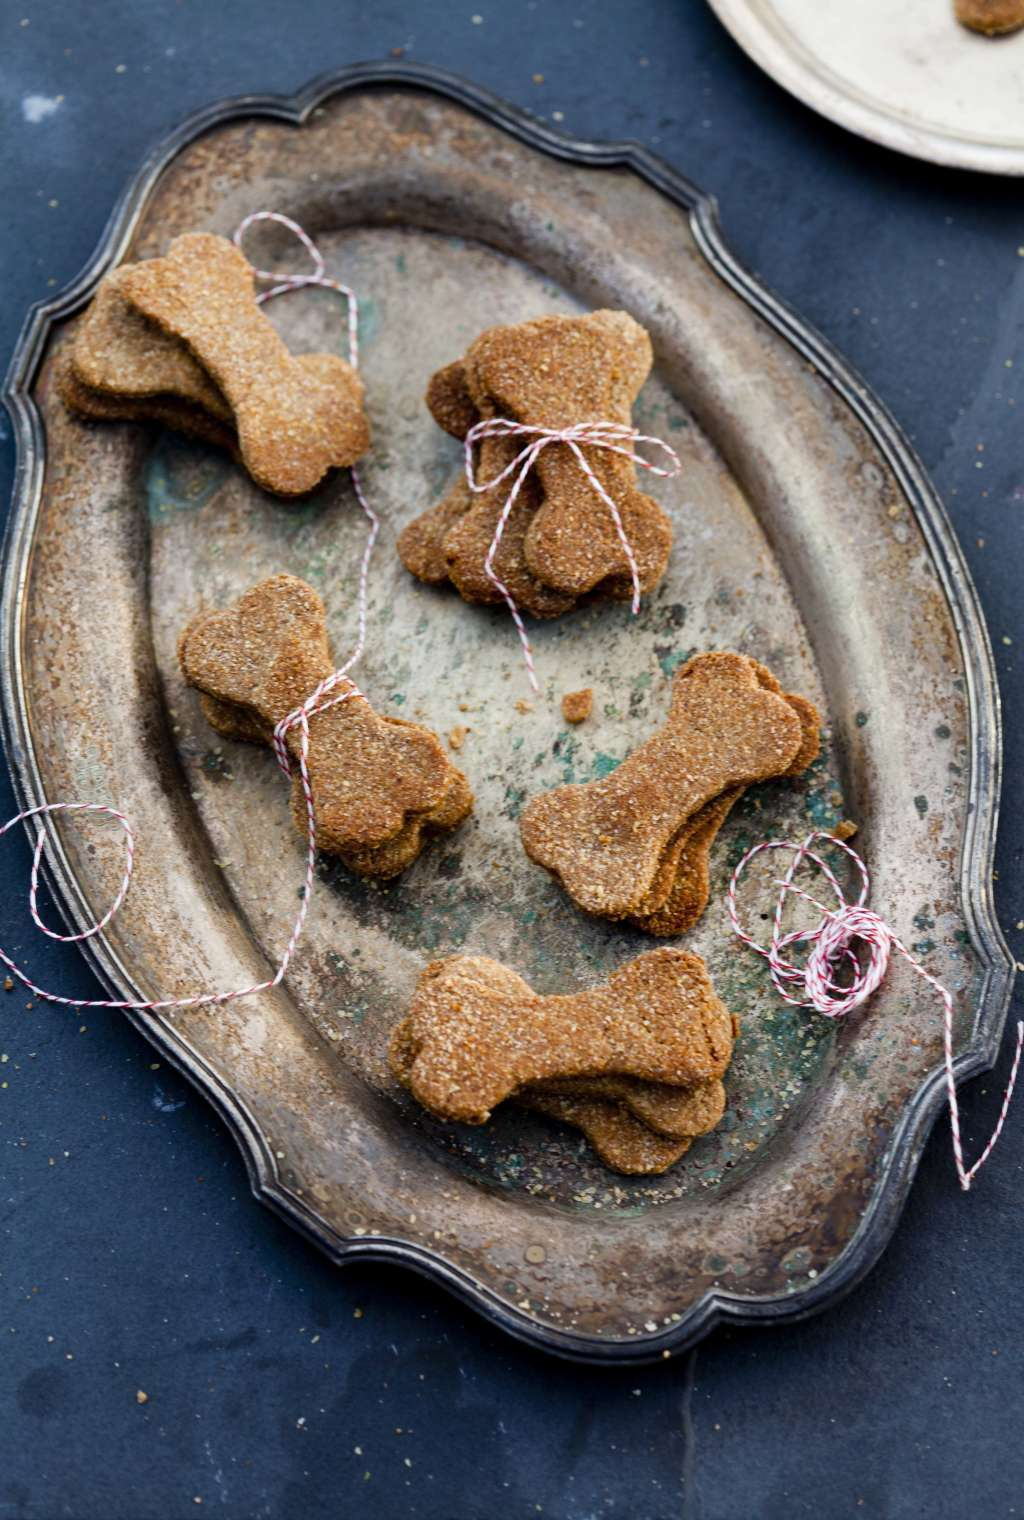 Homemade Dog Treats for Your Favorite Pup